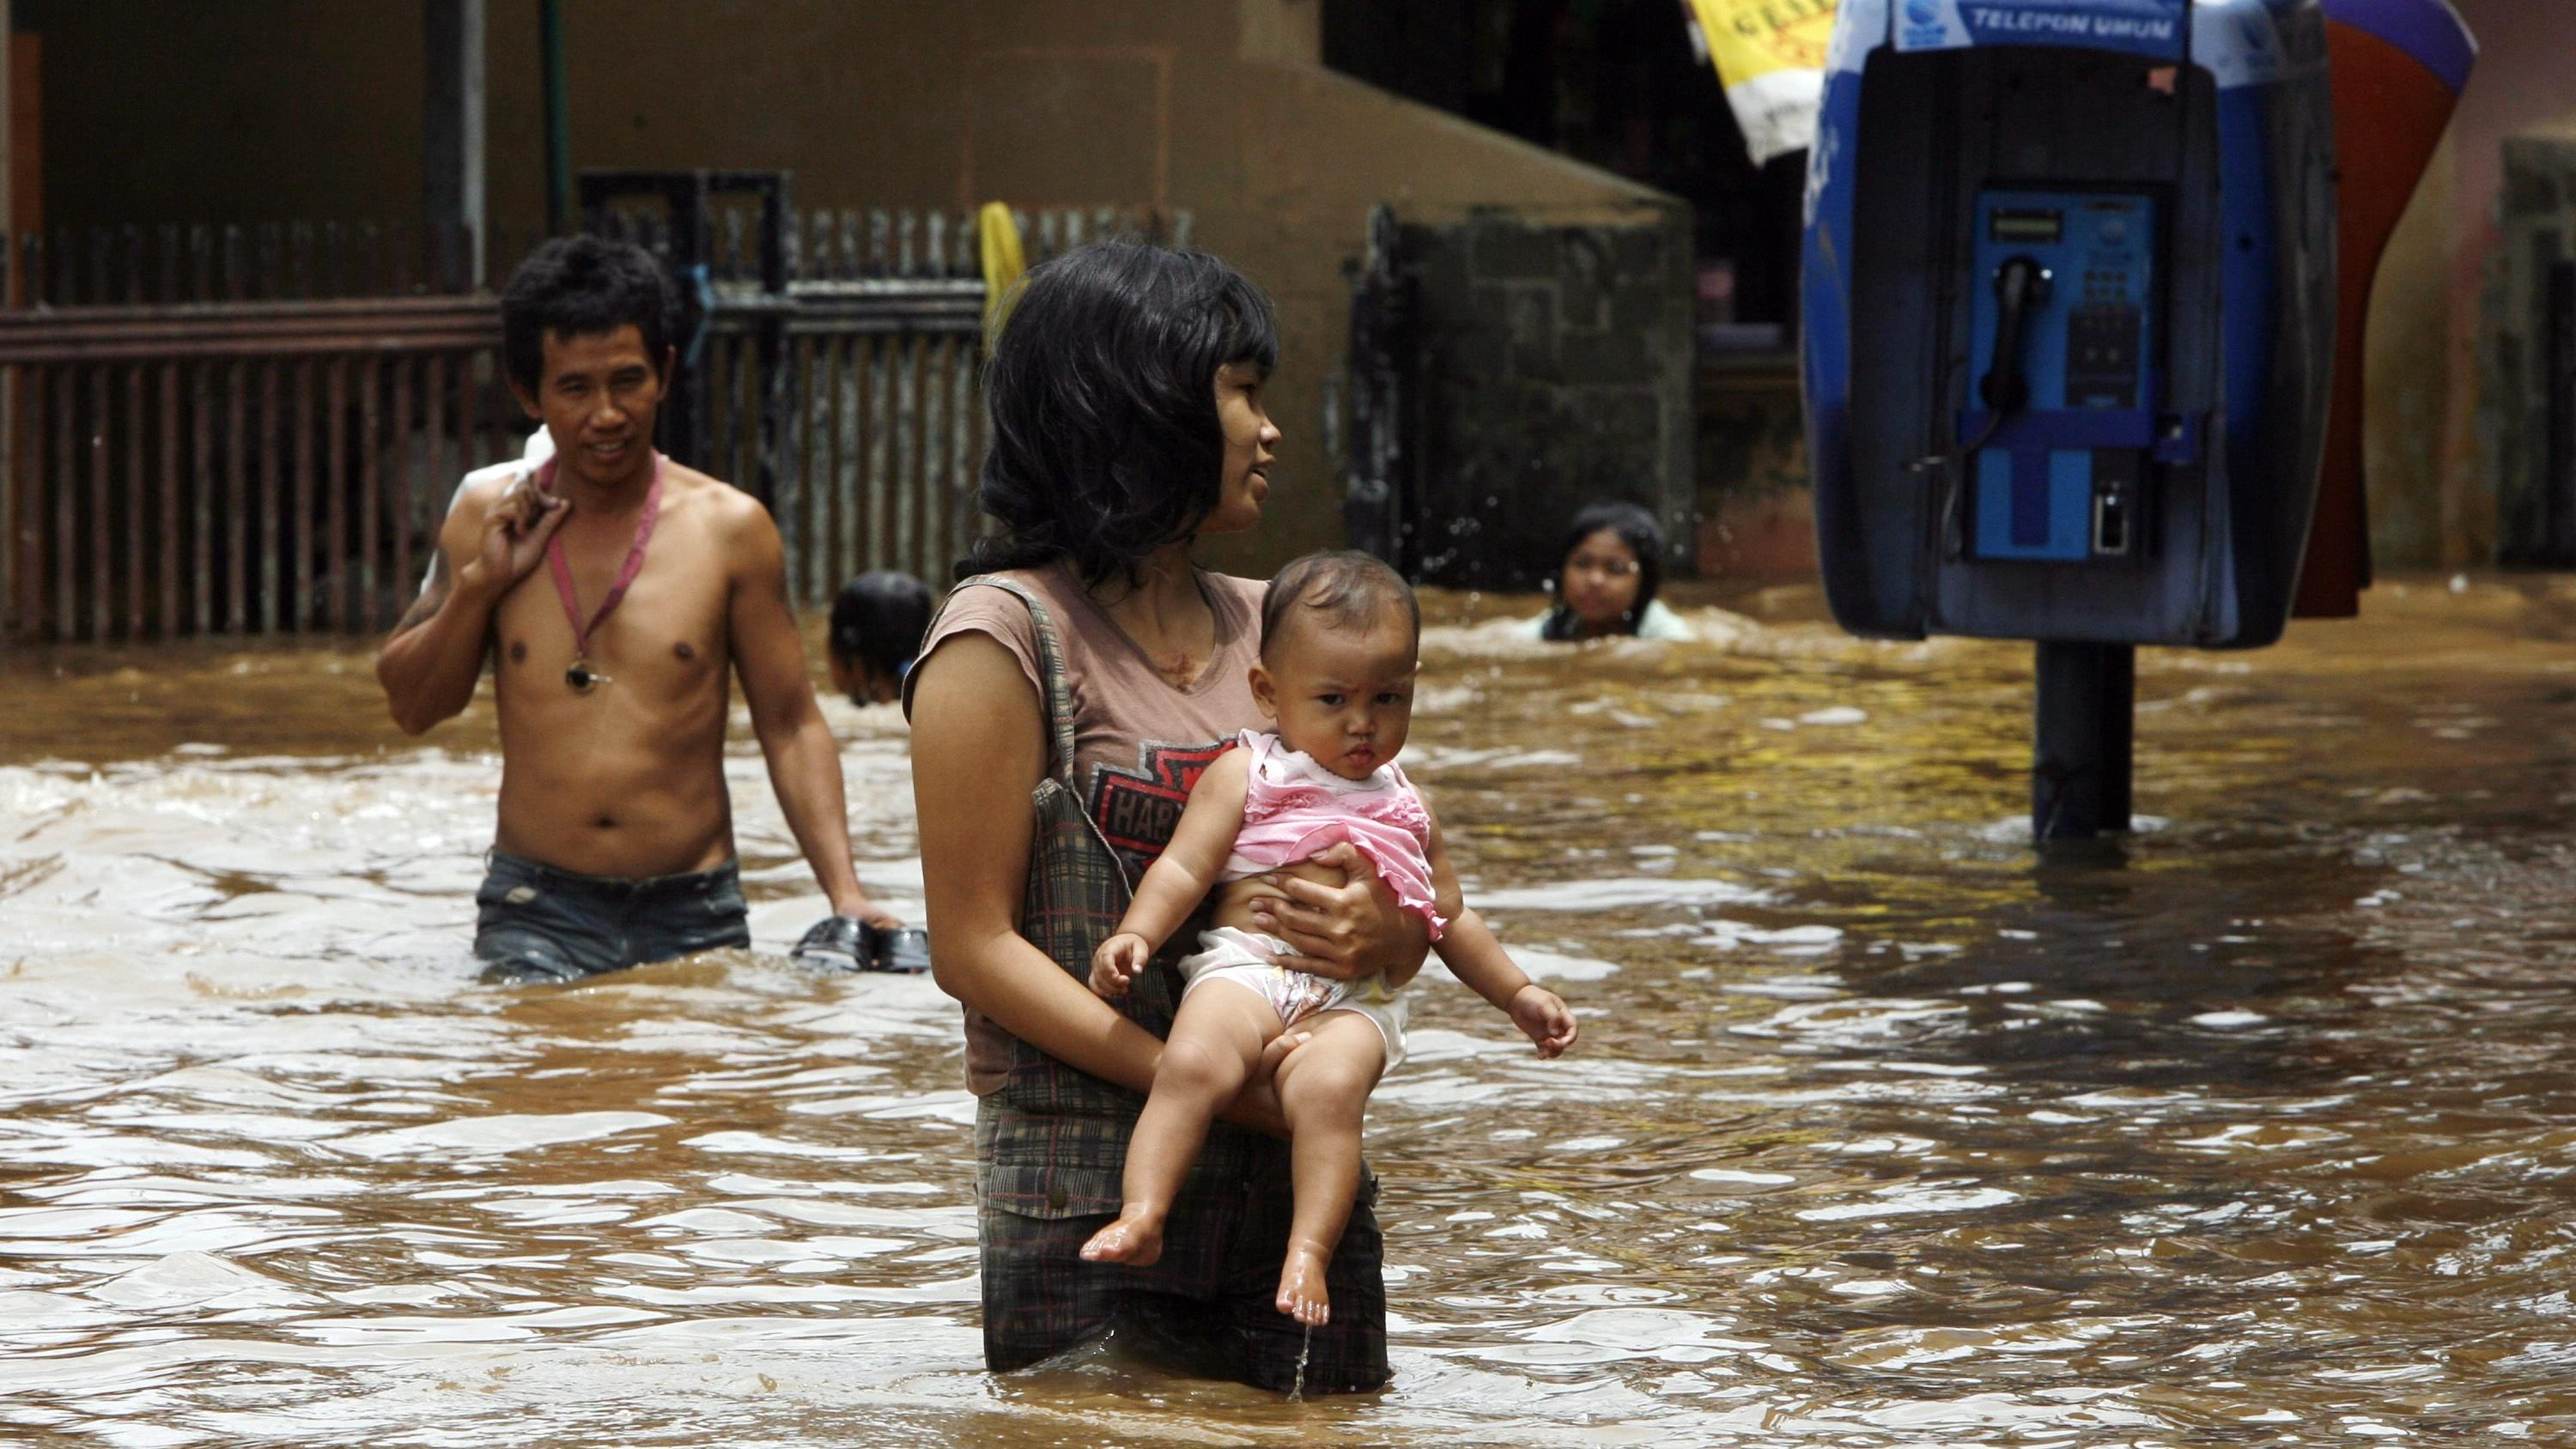 An Indonesian woman carries her daughter as she wades through a flooded residential area in Jakarta, Indonesia, 19 February 2010. Floodwater from the overflowing Ciliwung River has inundated a number of areas in Southern and Eastern parts of the capi